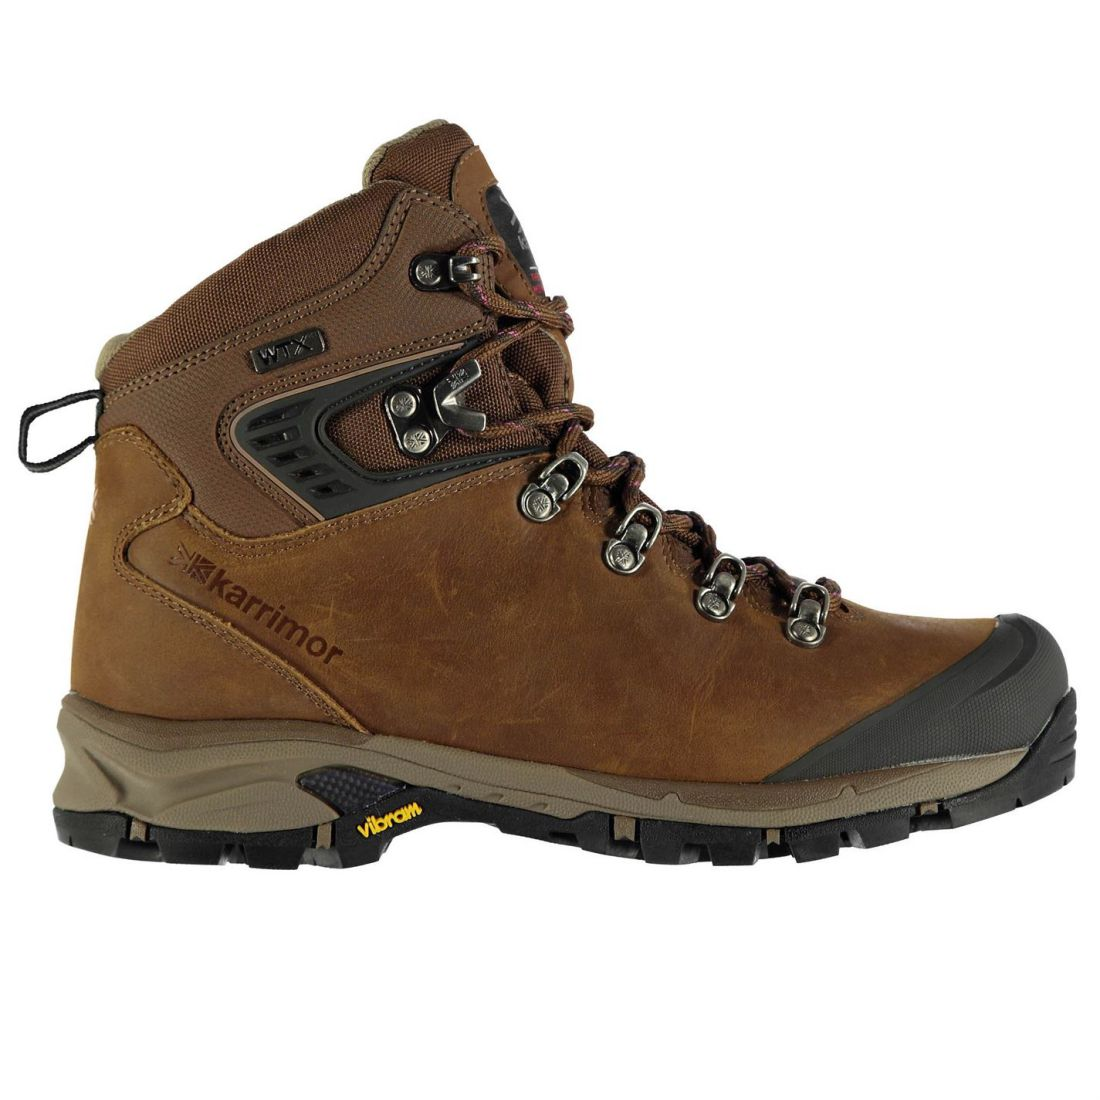 1f7ee13b2dcd6 Image is loading Karrimor-Womens-Cheetah-Vibram-Walking-Boots-Lace-Up-